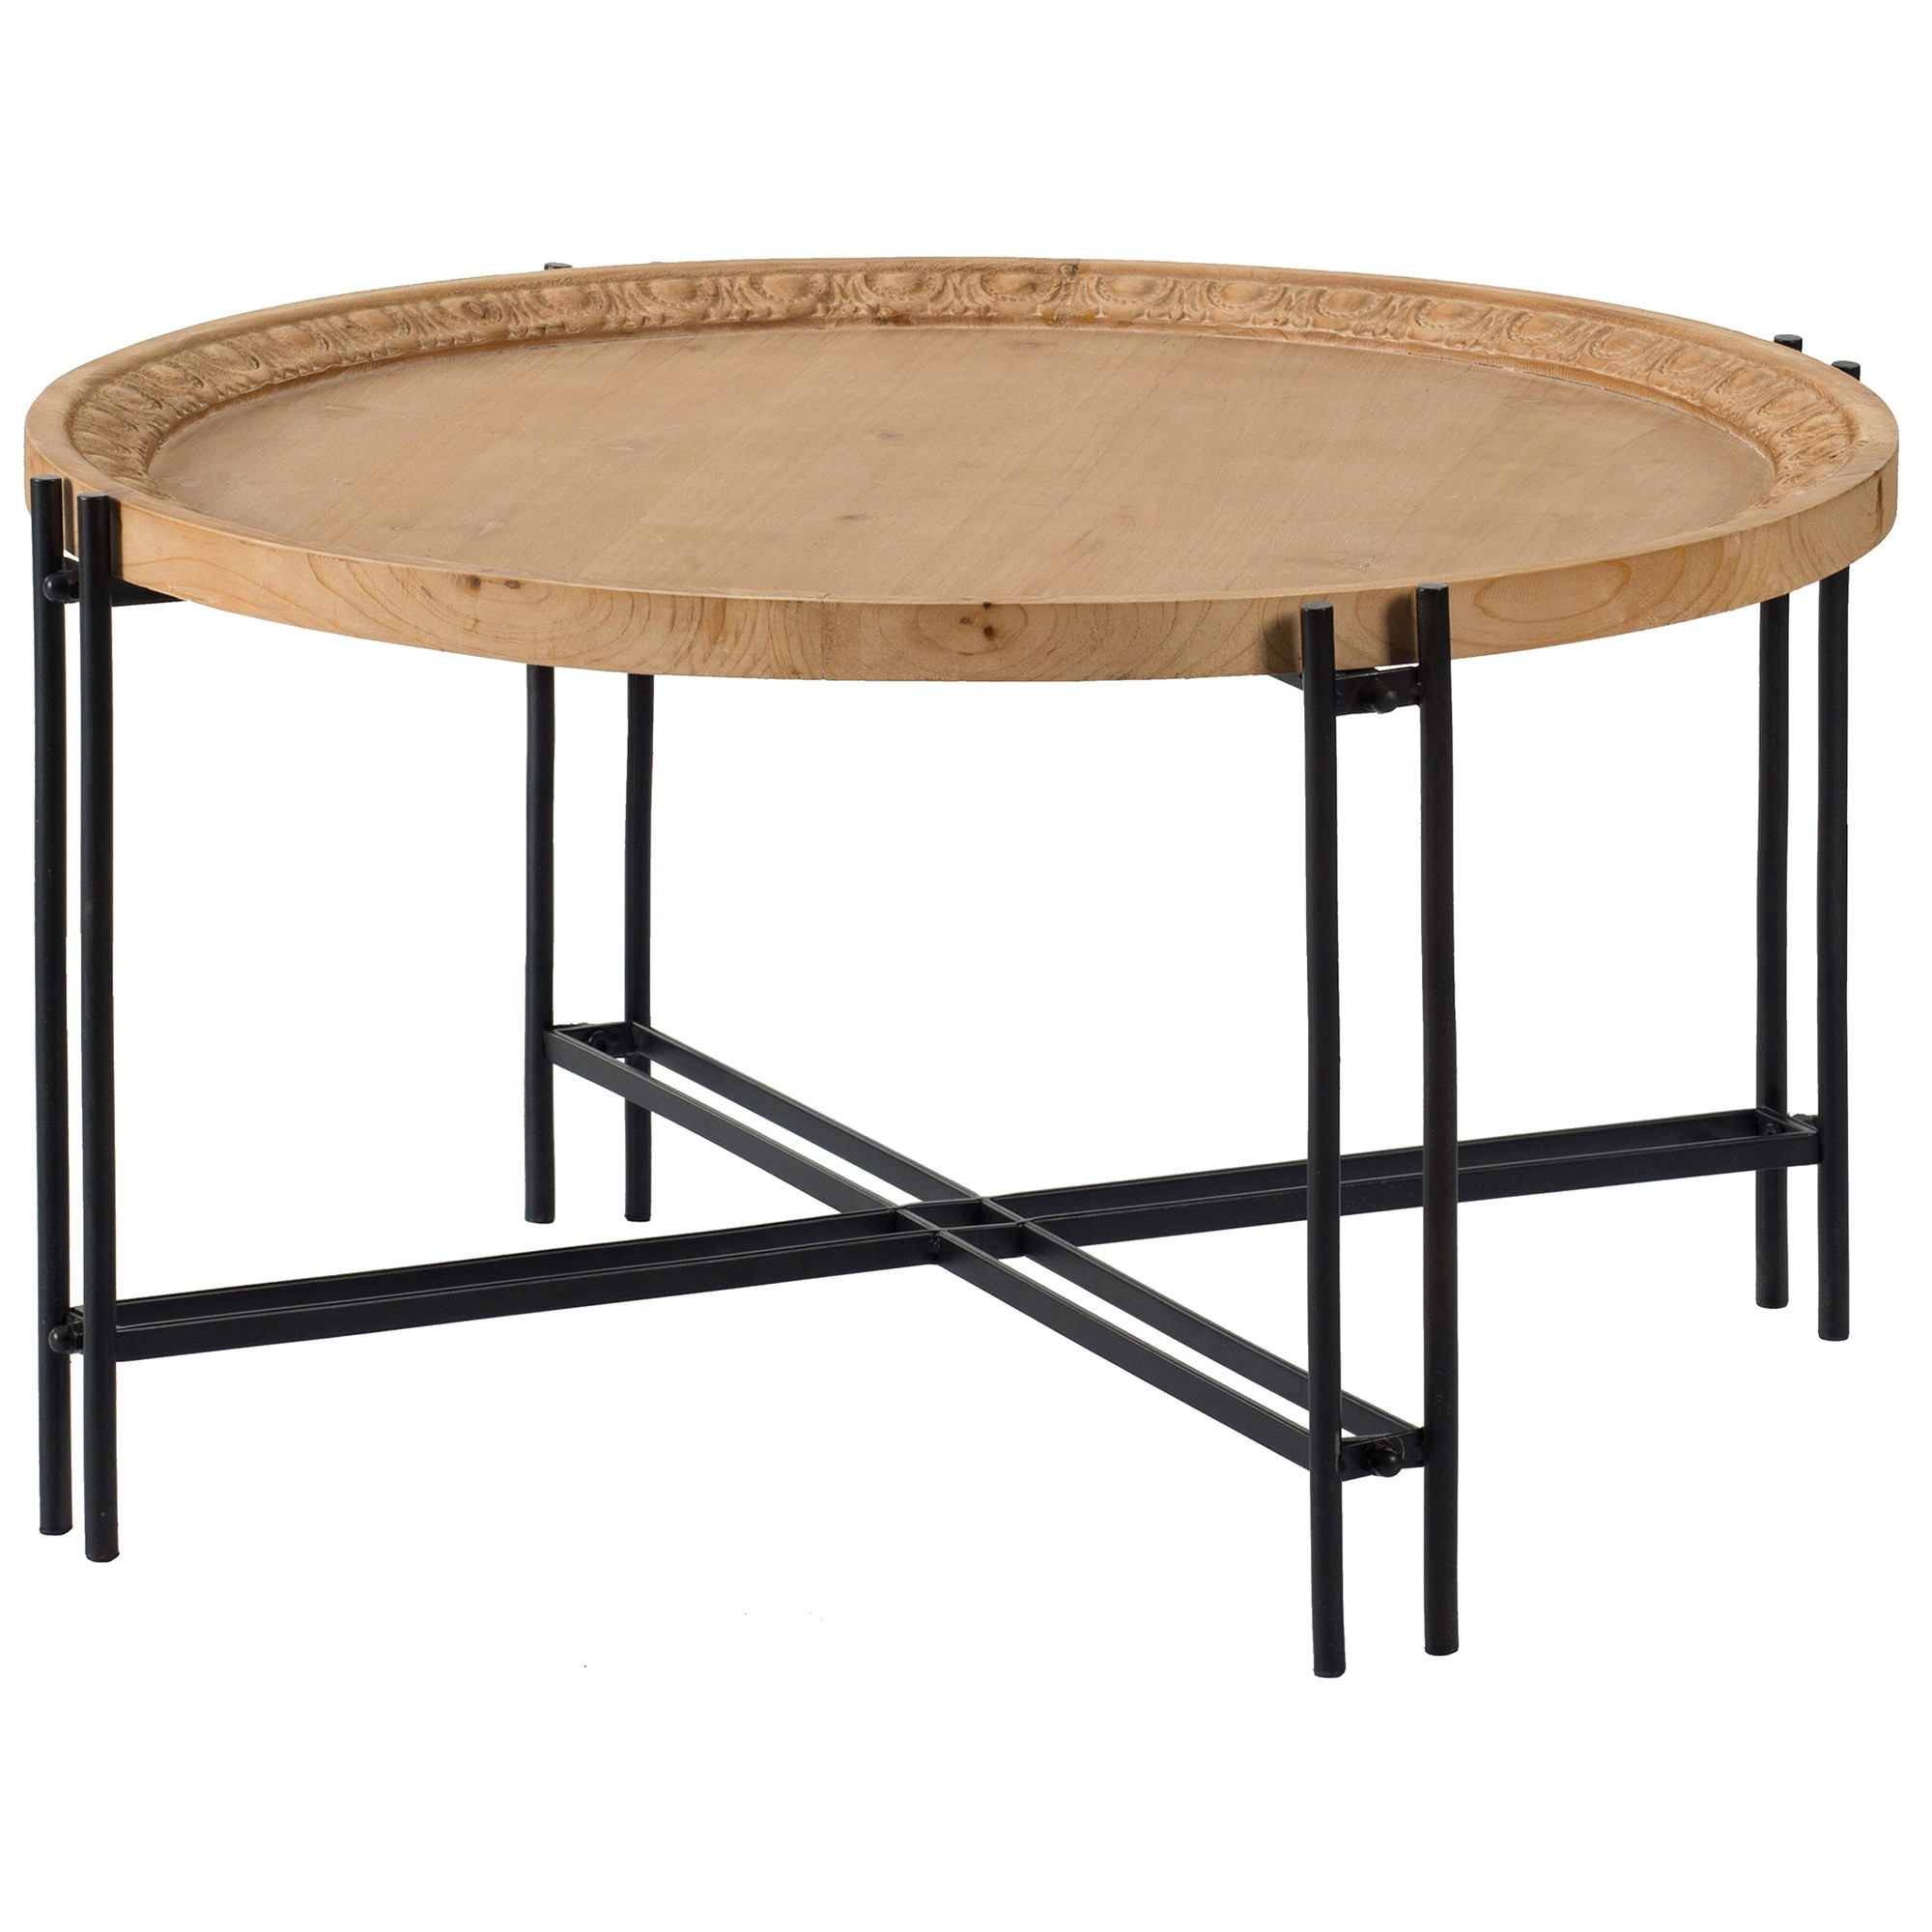 Bella Fir Timber Topped Metal Round Coffee Table, 80cm